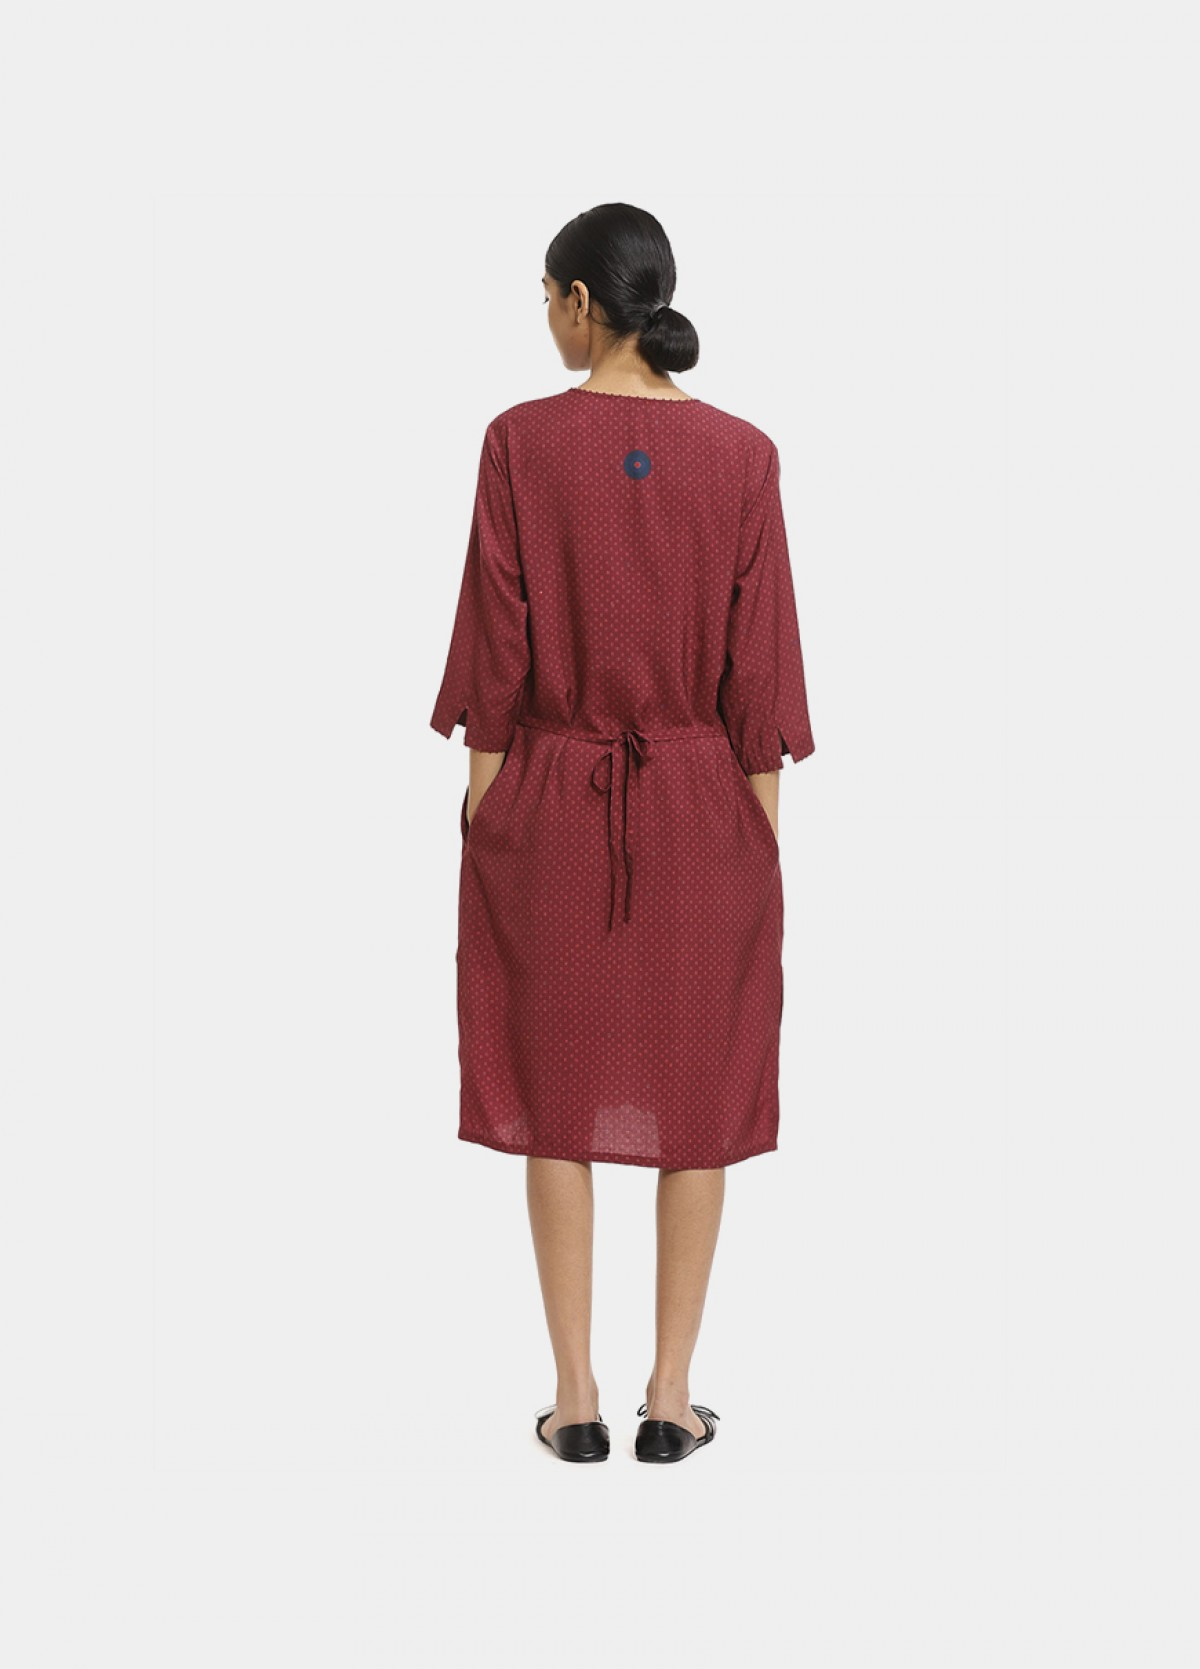 The Boond Red Maroon Dress